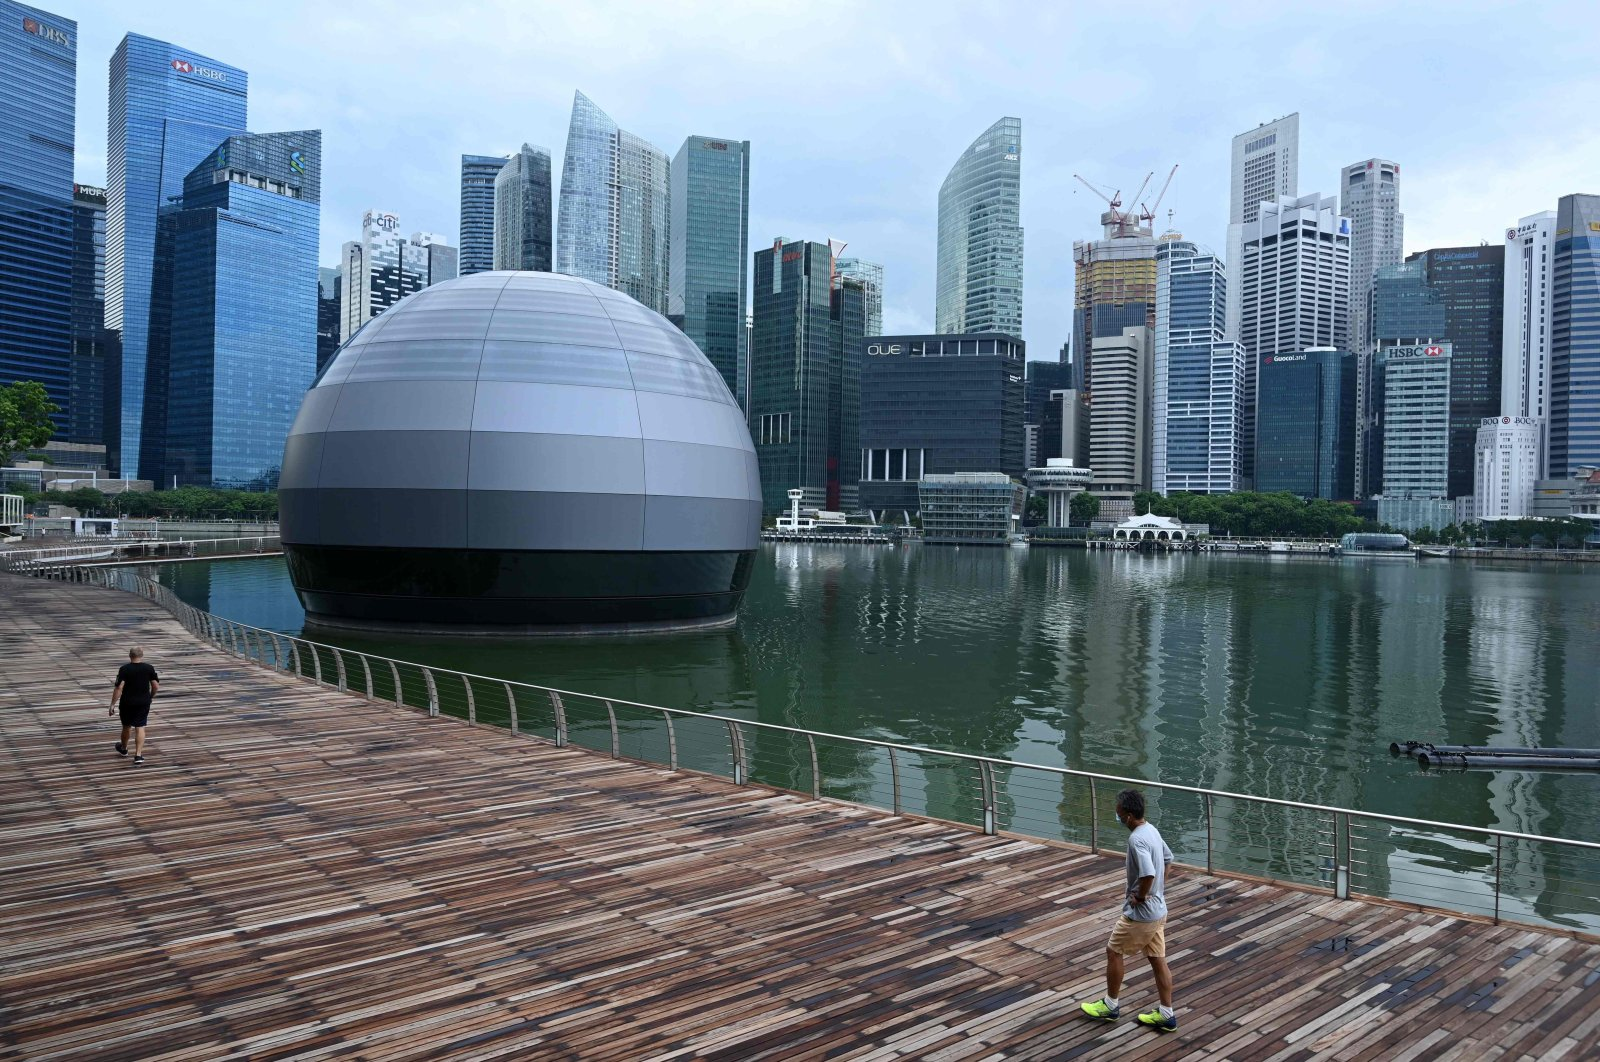 People wearing face masks as a preventive measure against the spread of the COVID-19 outbreak walk along the promenade at Marina Bay in Singapore, May 4, 2020. (AFP Photo)